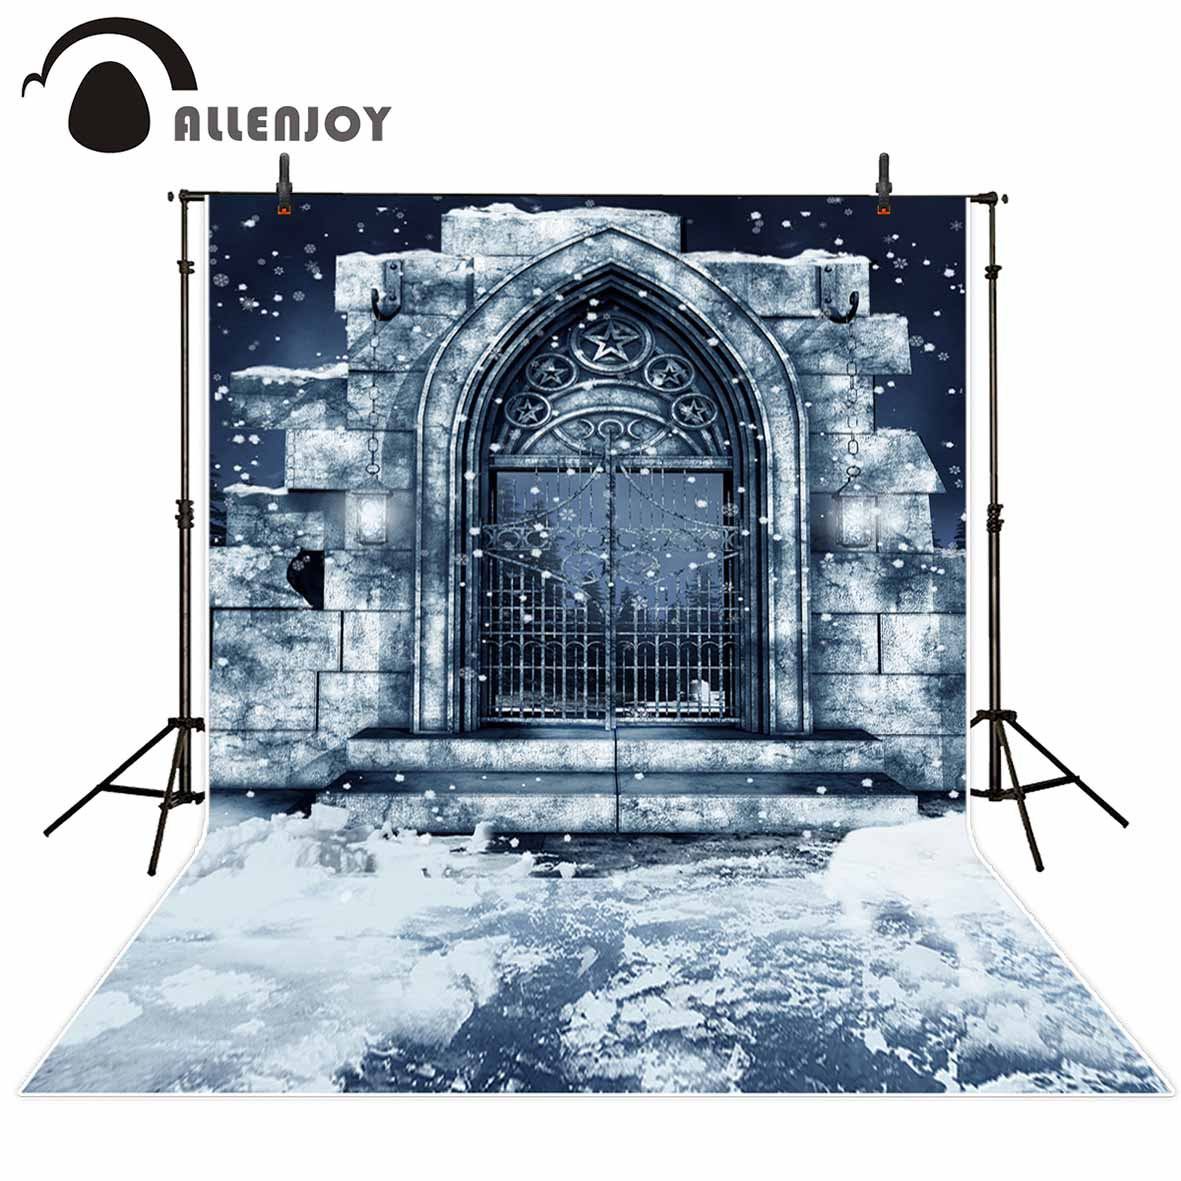 Allenjoy photographic background Cold Iron gate Arches Winter decay backdrop photocall professional customize vintage background